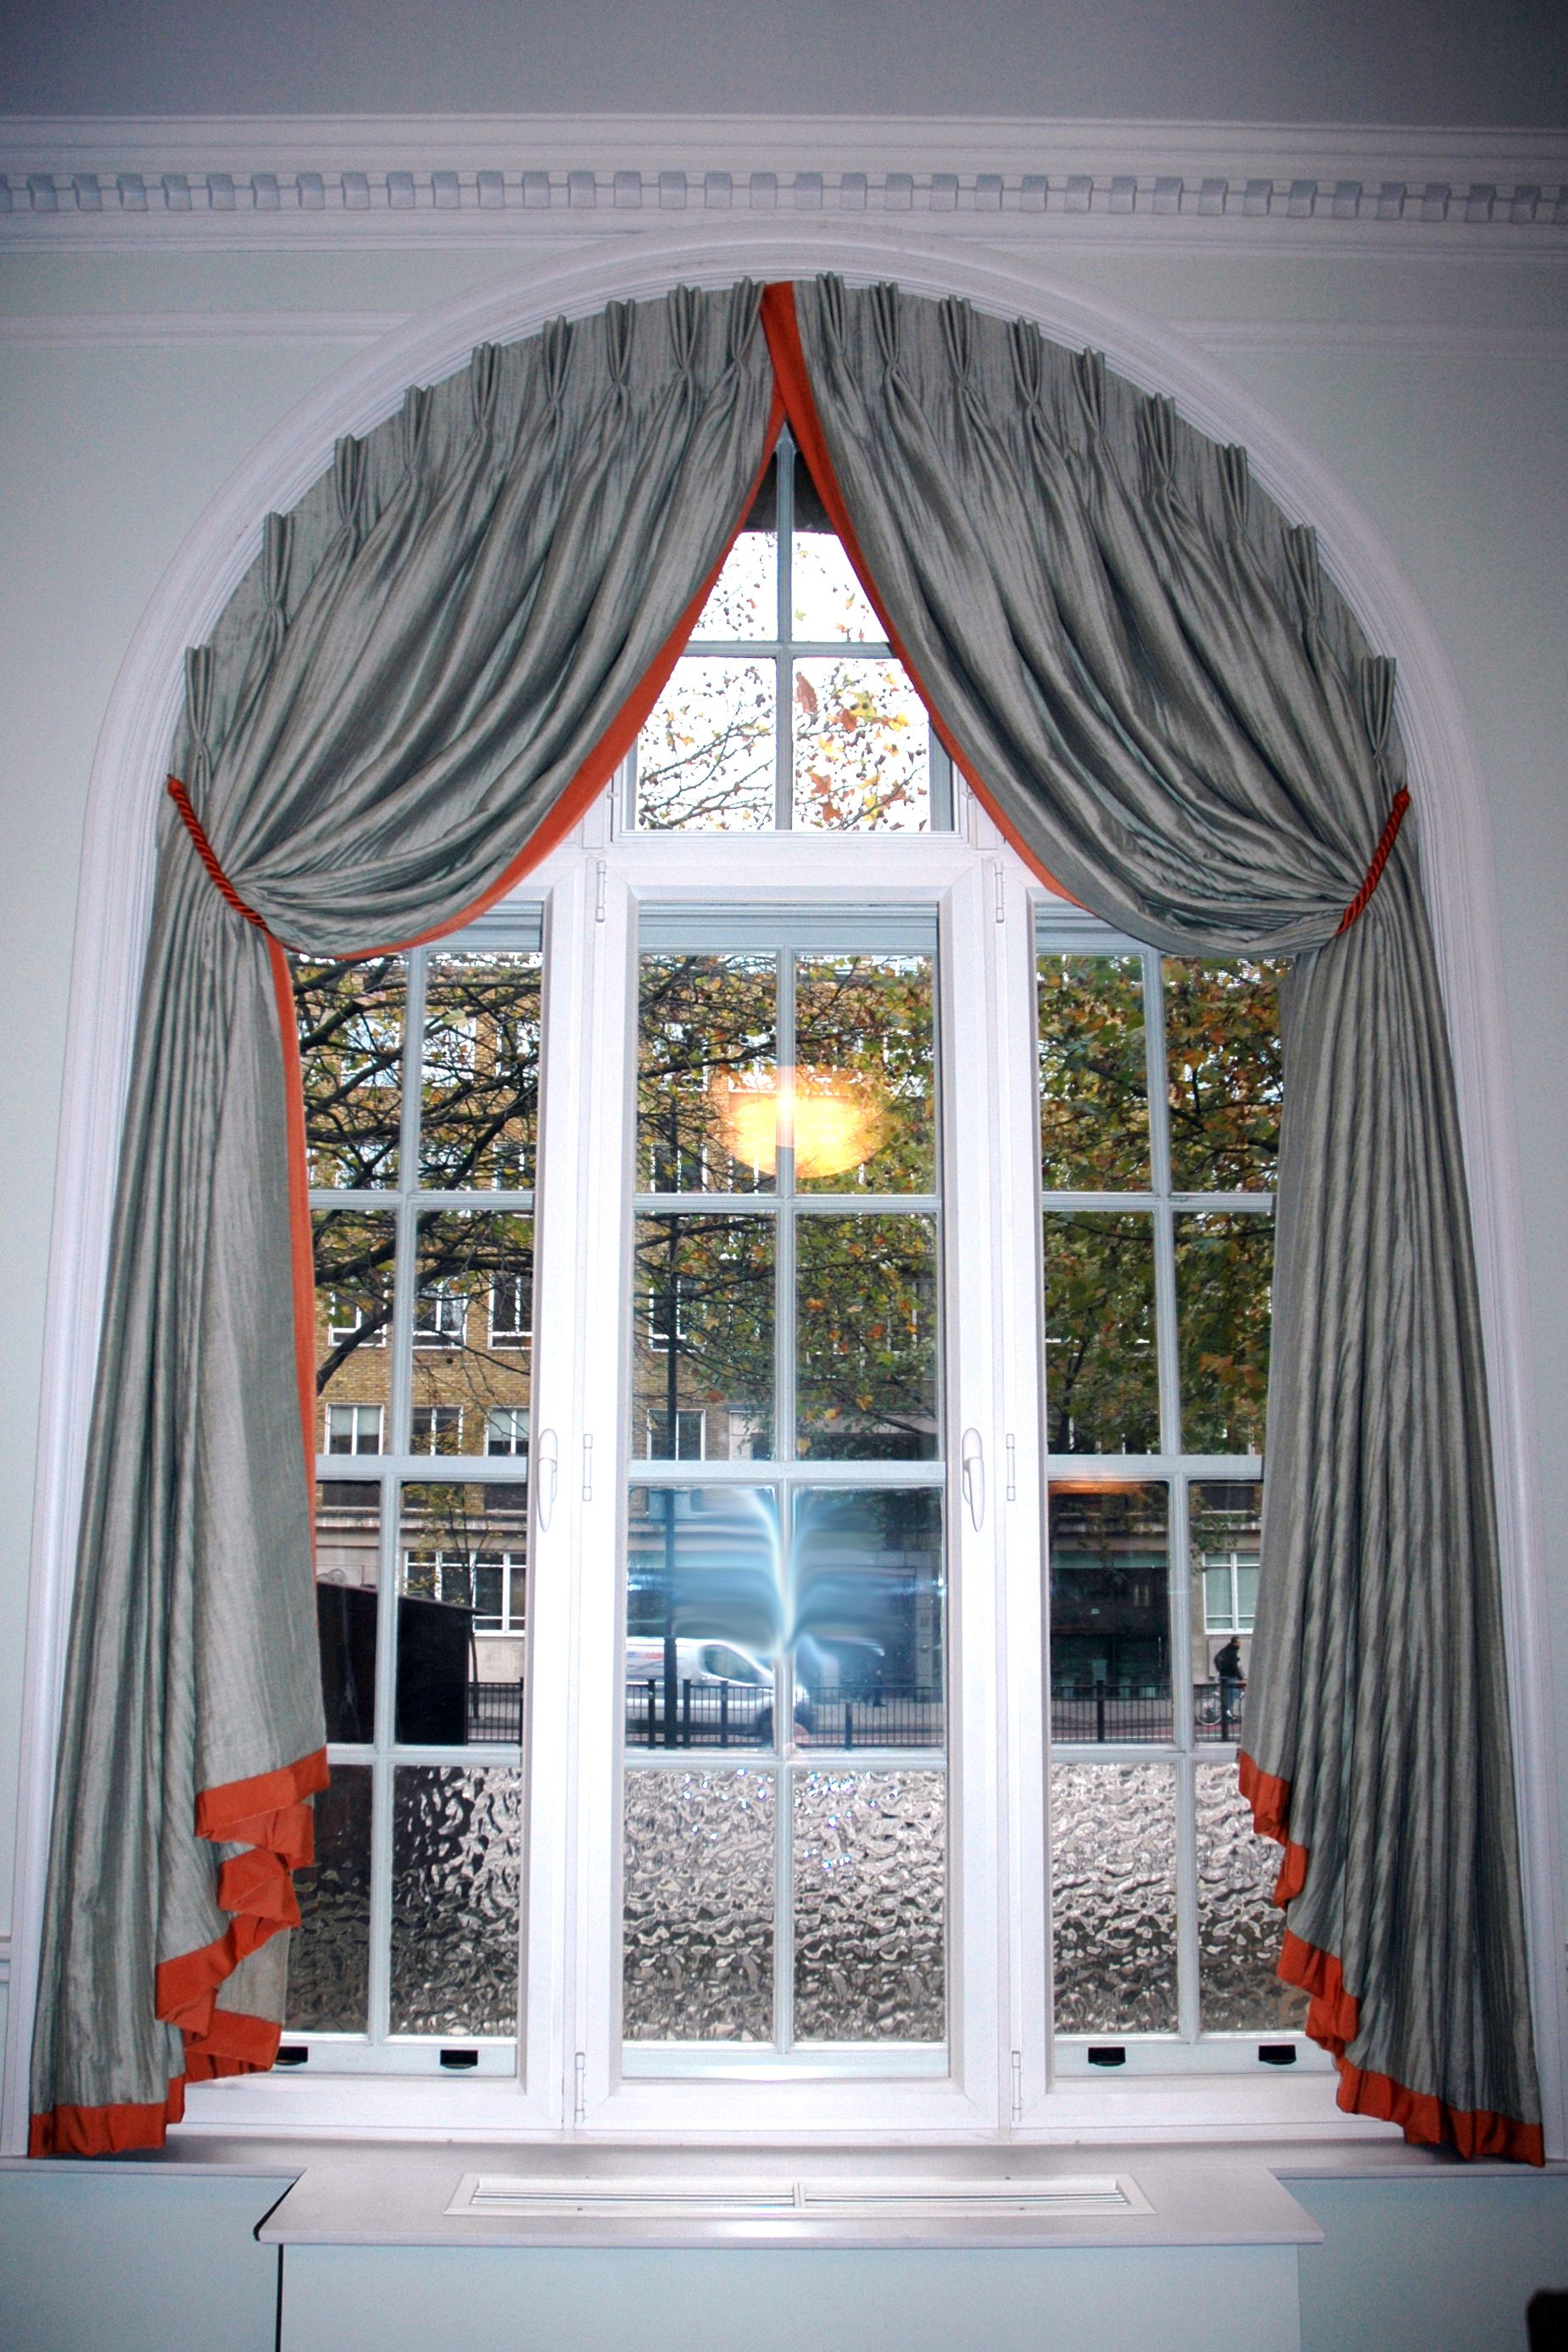 Fixed Headed Curtains In Arched Window Arch Treatments